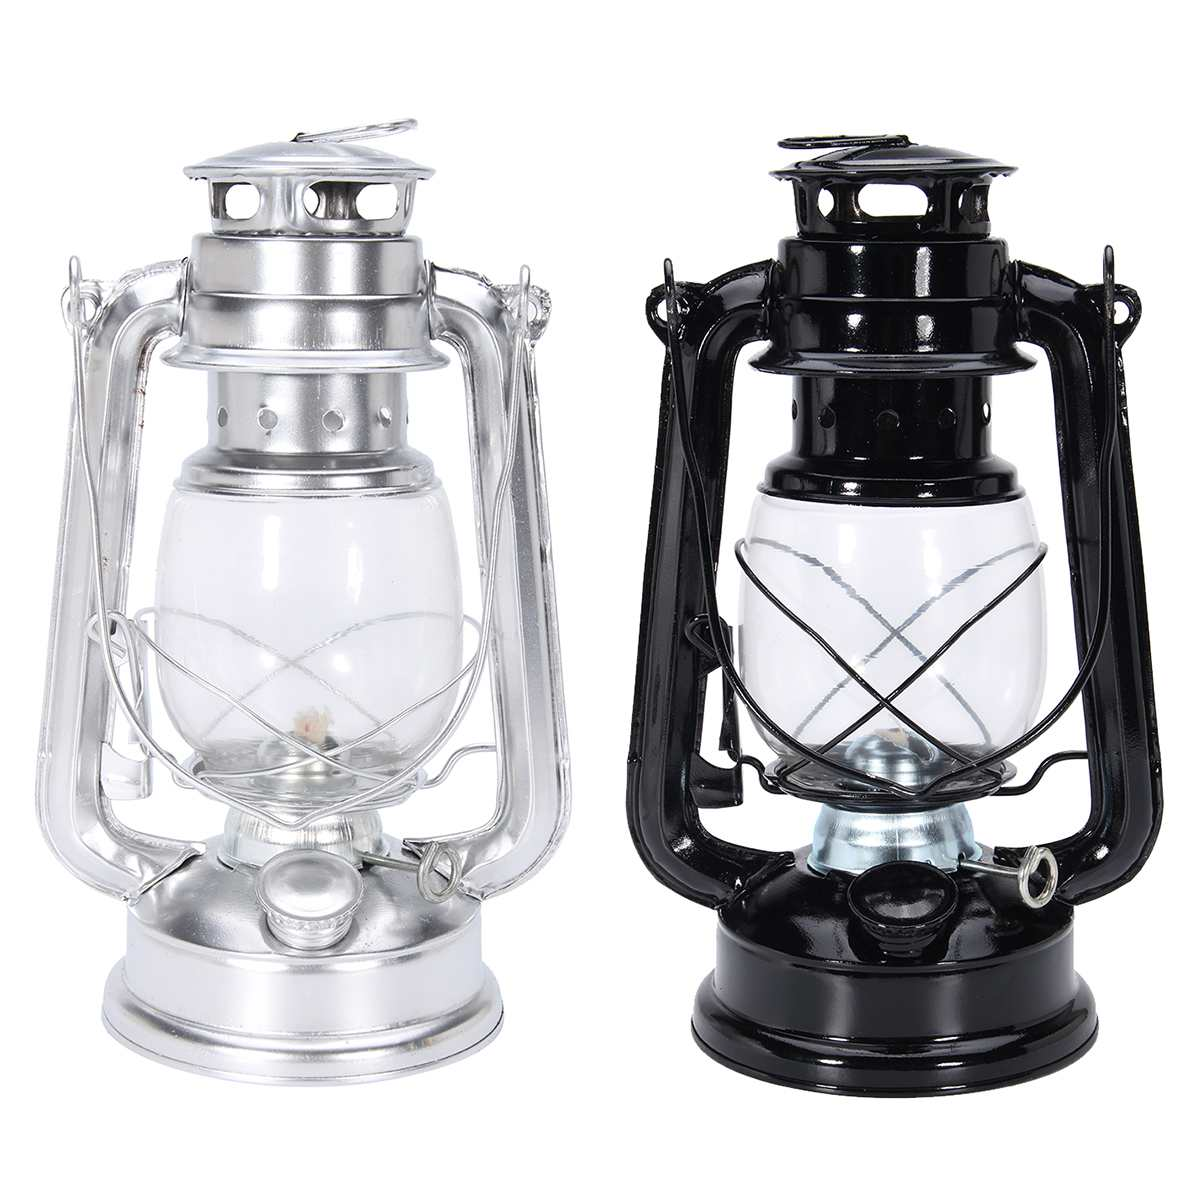 34OFF Kerosene Wick Classic Lanterns Retro Kerosene Paraffin Lamp 27 in Hurricane Portable Camp Table Kerosene Lamp 24cm US10 LED Dimmable Outdoor 5A3LRj4